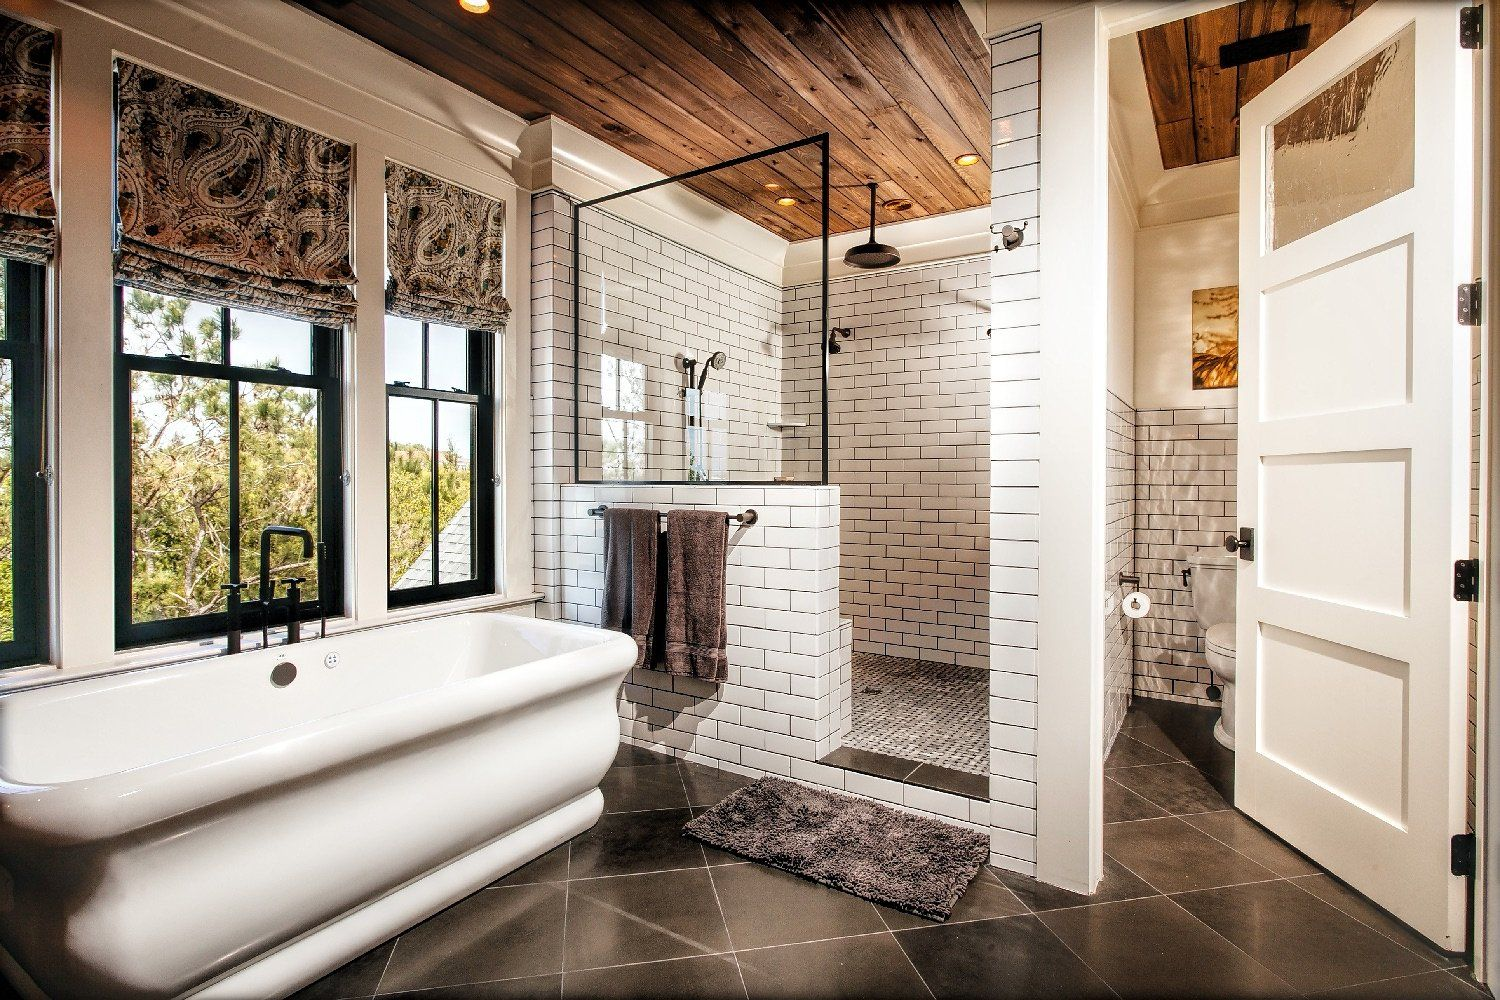 Shower Ceiling Ideas And Inspiration For Your Bathroom Hunker In 2020 Home Bathrooms Remodel Dream Bathrooms